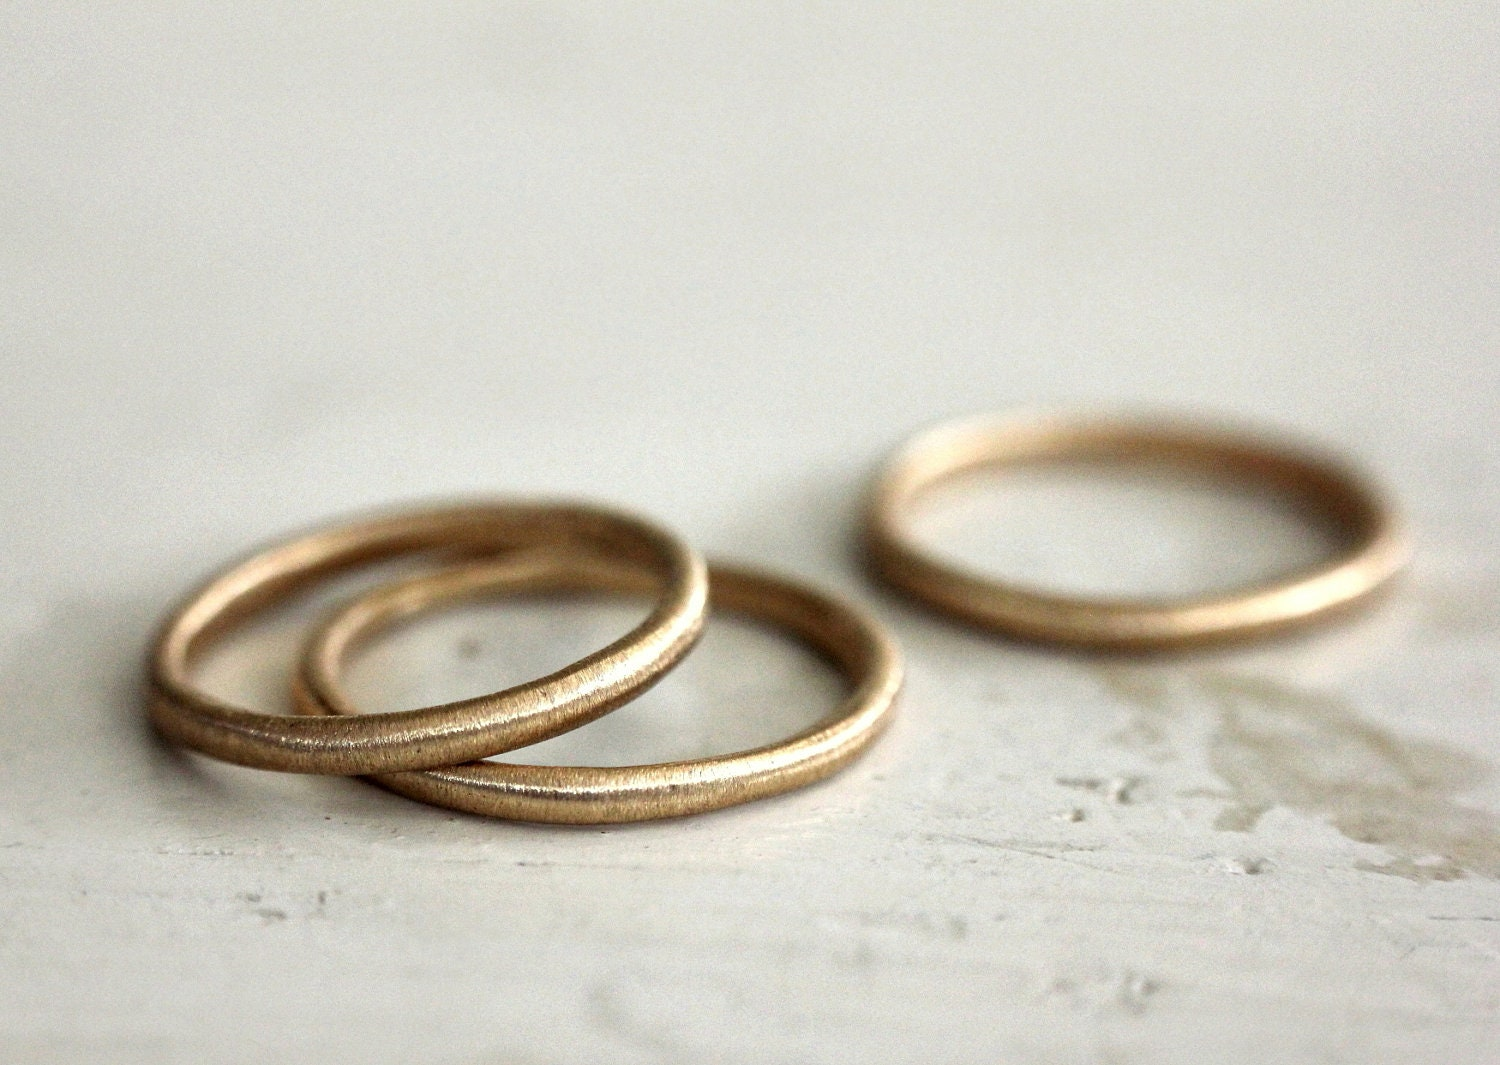 A simple gold band. 18k. Rustic love. A gold ring. Sophie. - SundayOwl